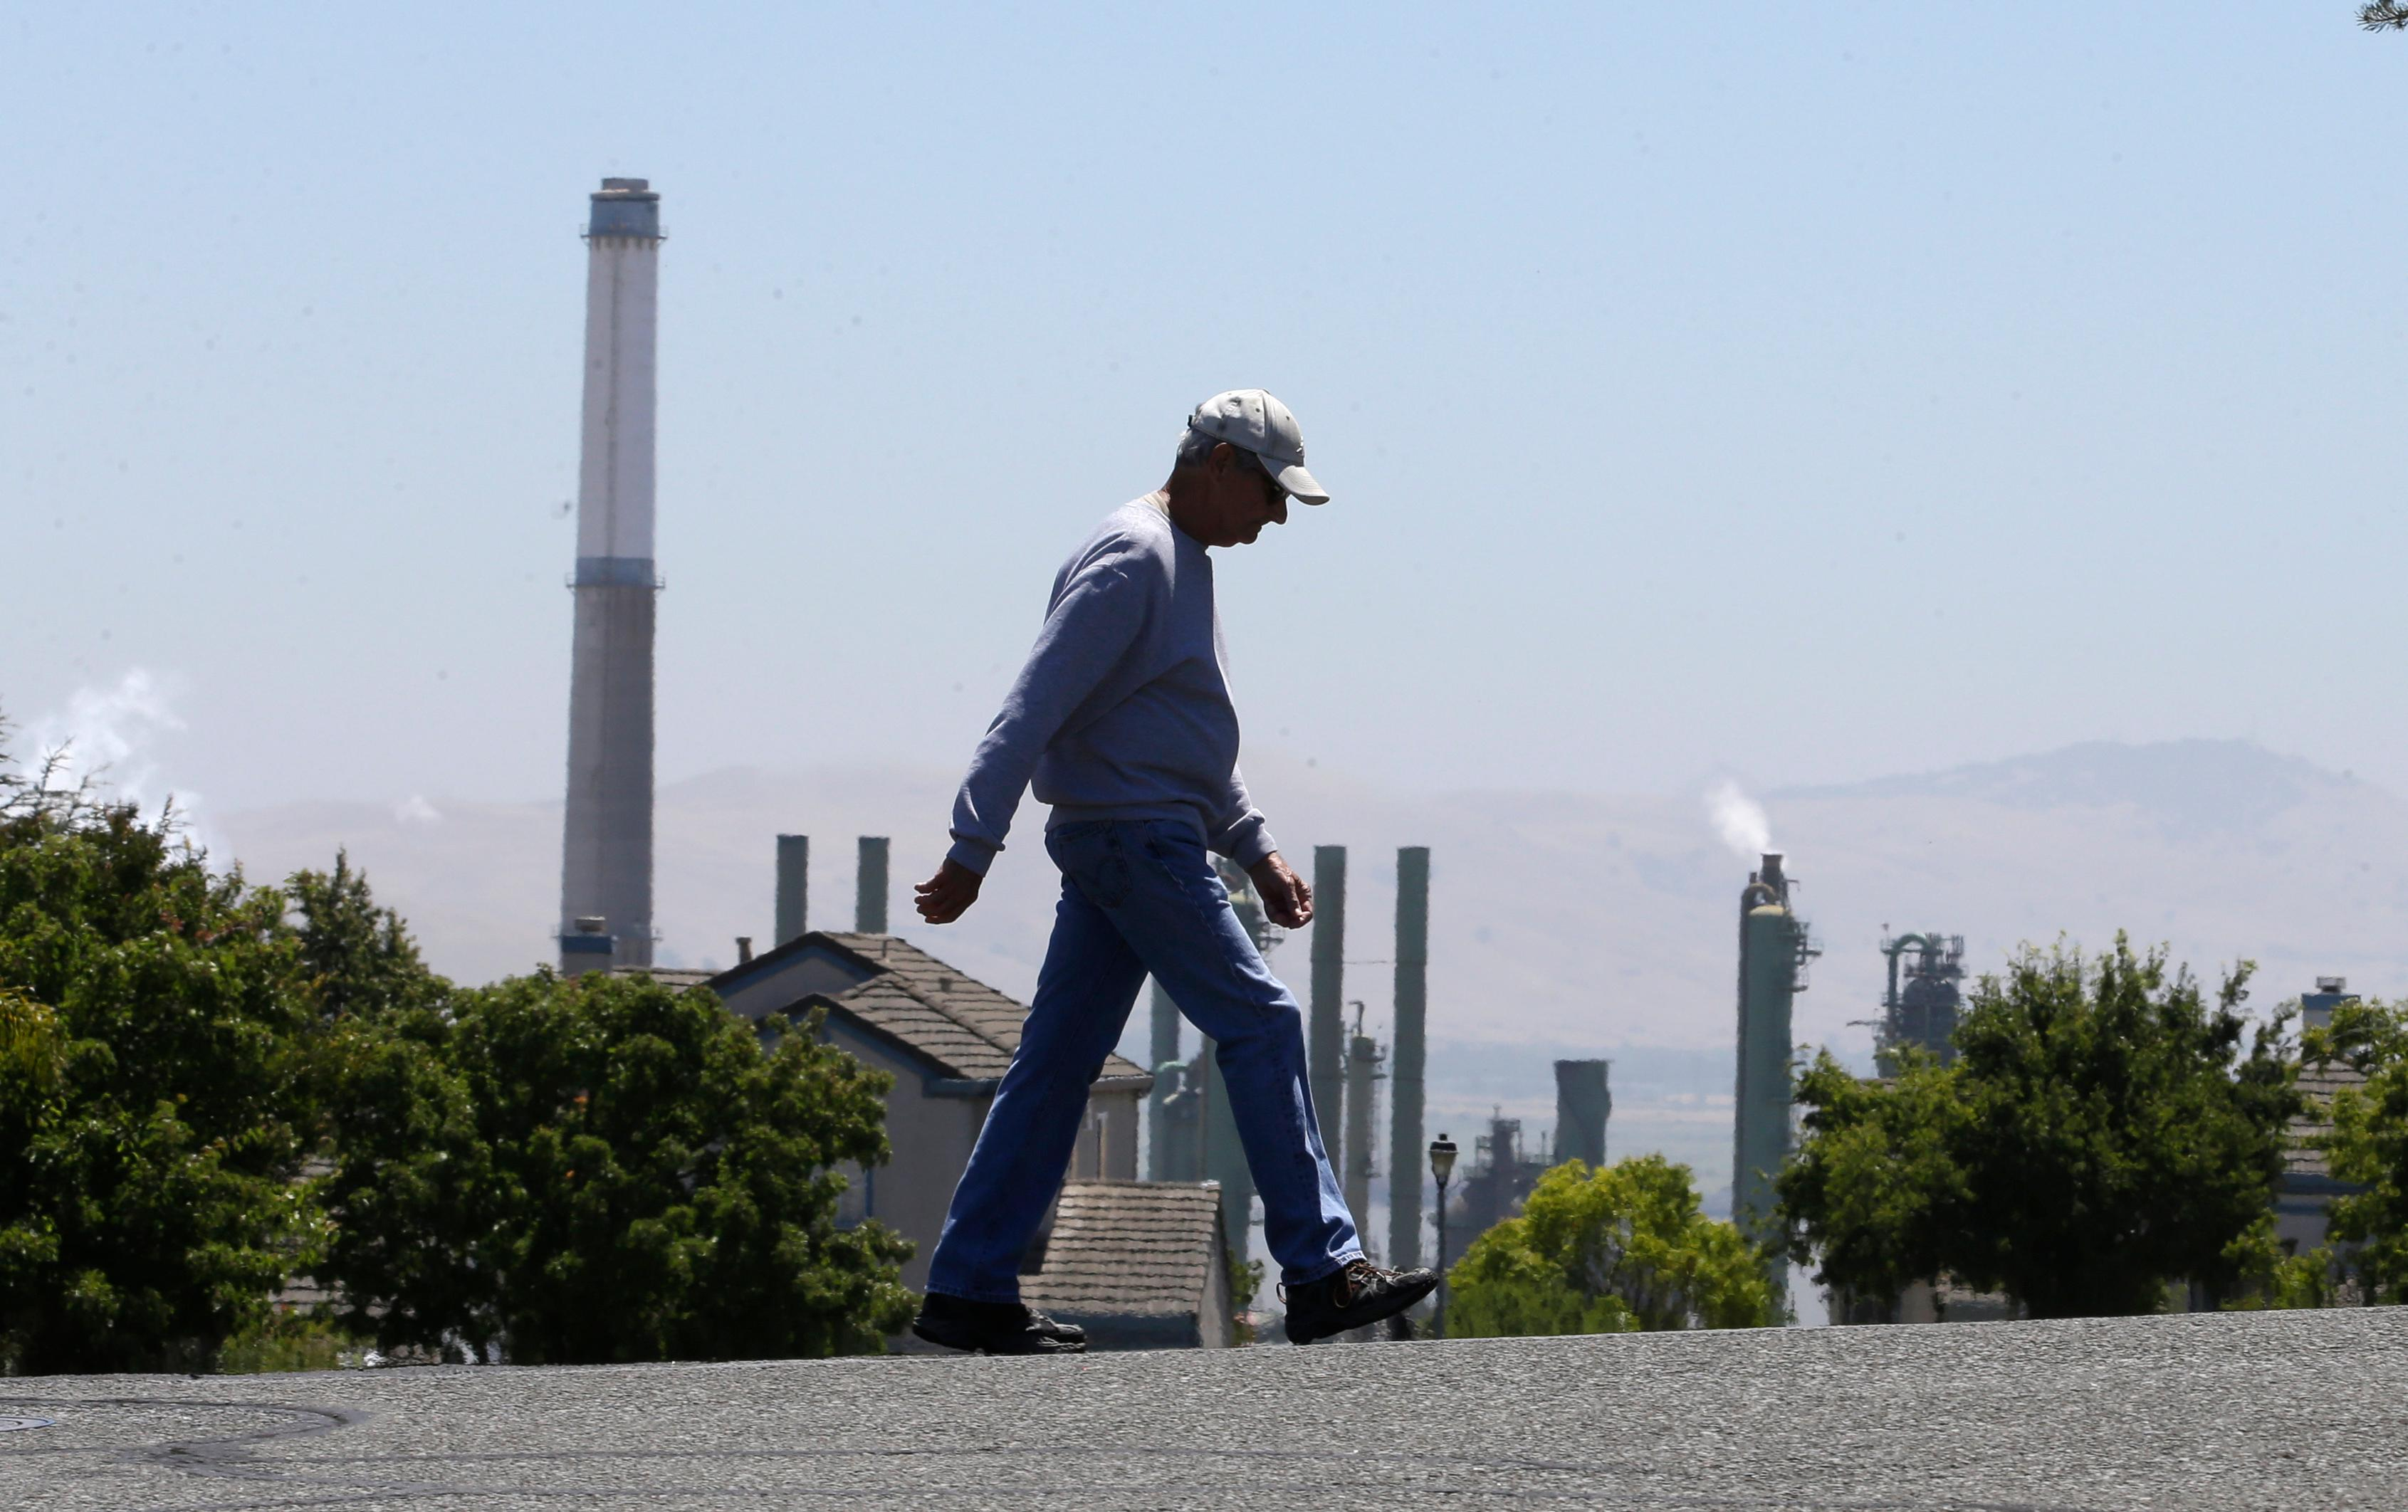 "File- In this July 12, 2017 file photo the stacks from the Valero Benicia Refinery are seen as a pedestrian walks in a nearby neighborhood, in Benicia, Calif. Gov. Jerry Brown and state lawmakers got national attention last month for extending the state's ""cap and trade"" climate change law that keeps alive a program that raises hundreds of millions of dollars a year by auctioning off permits to release climate-changing gases.  California lawmakers return Monday, Aug. 21 , from a monthlong break with a busy agenda that includes tackling the state's housing crisis and deciding whether to make California a statewide sanctuary for people living illegally in the U.S. (AP Photo/Rich Pedroncelli, file)"